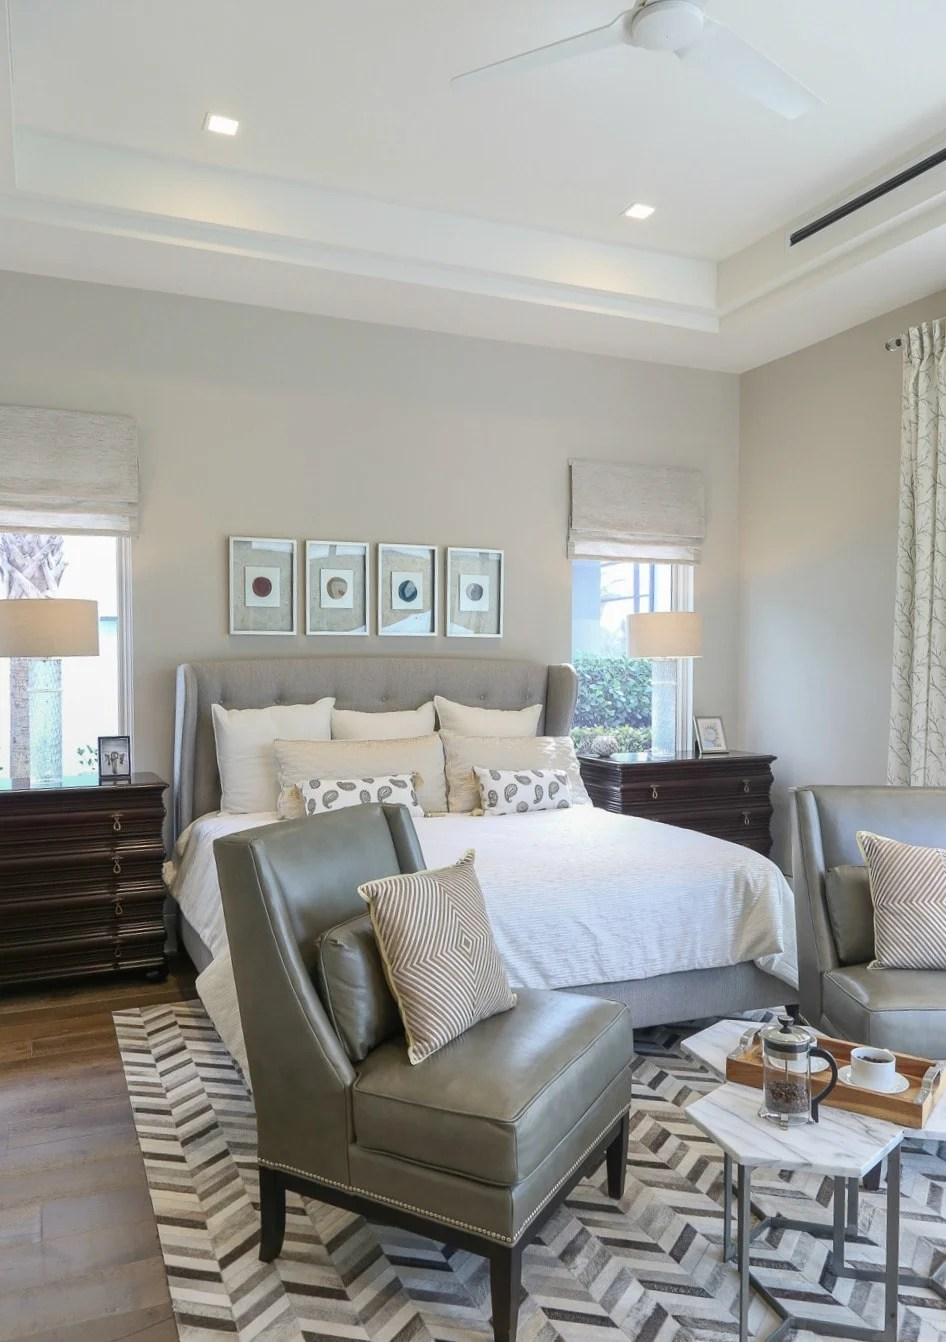 sherwin williams worldly gray bedroom walls